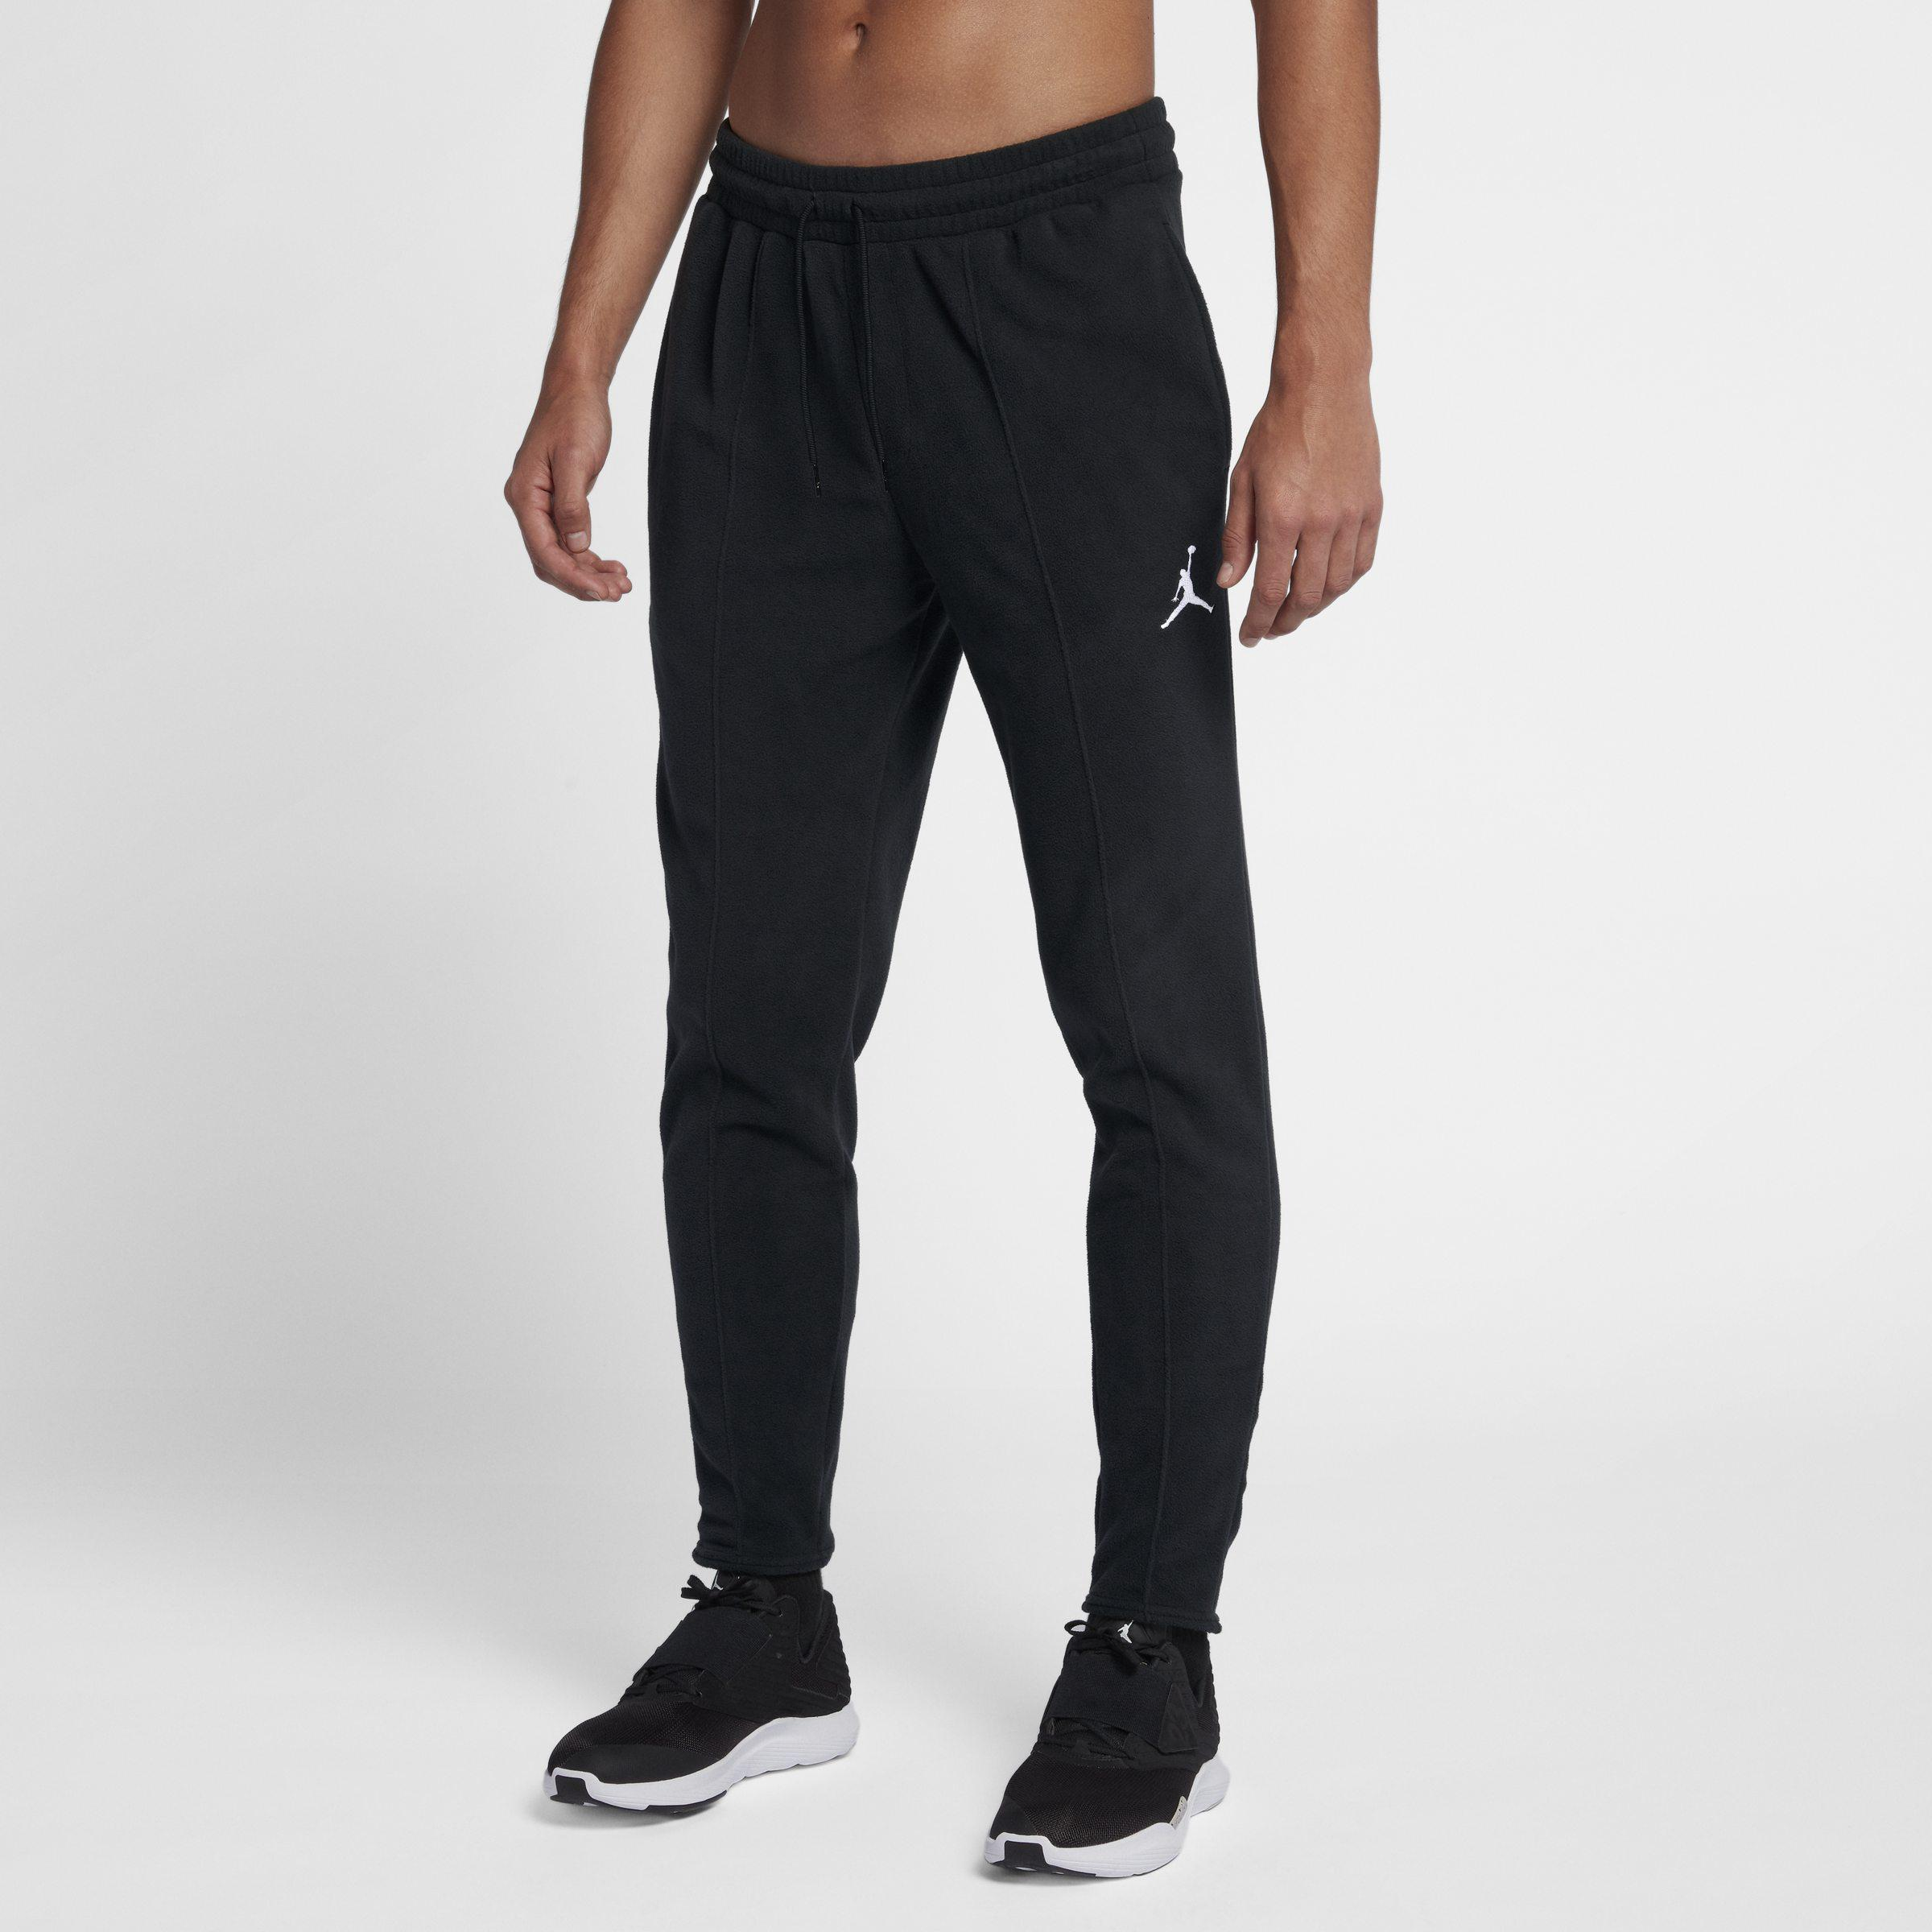 official store new styles picked up Jordan Therma 23 Alpha Training Trousers